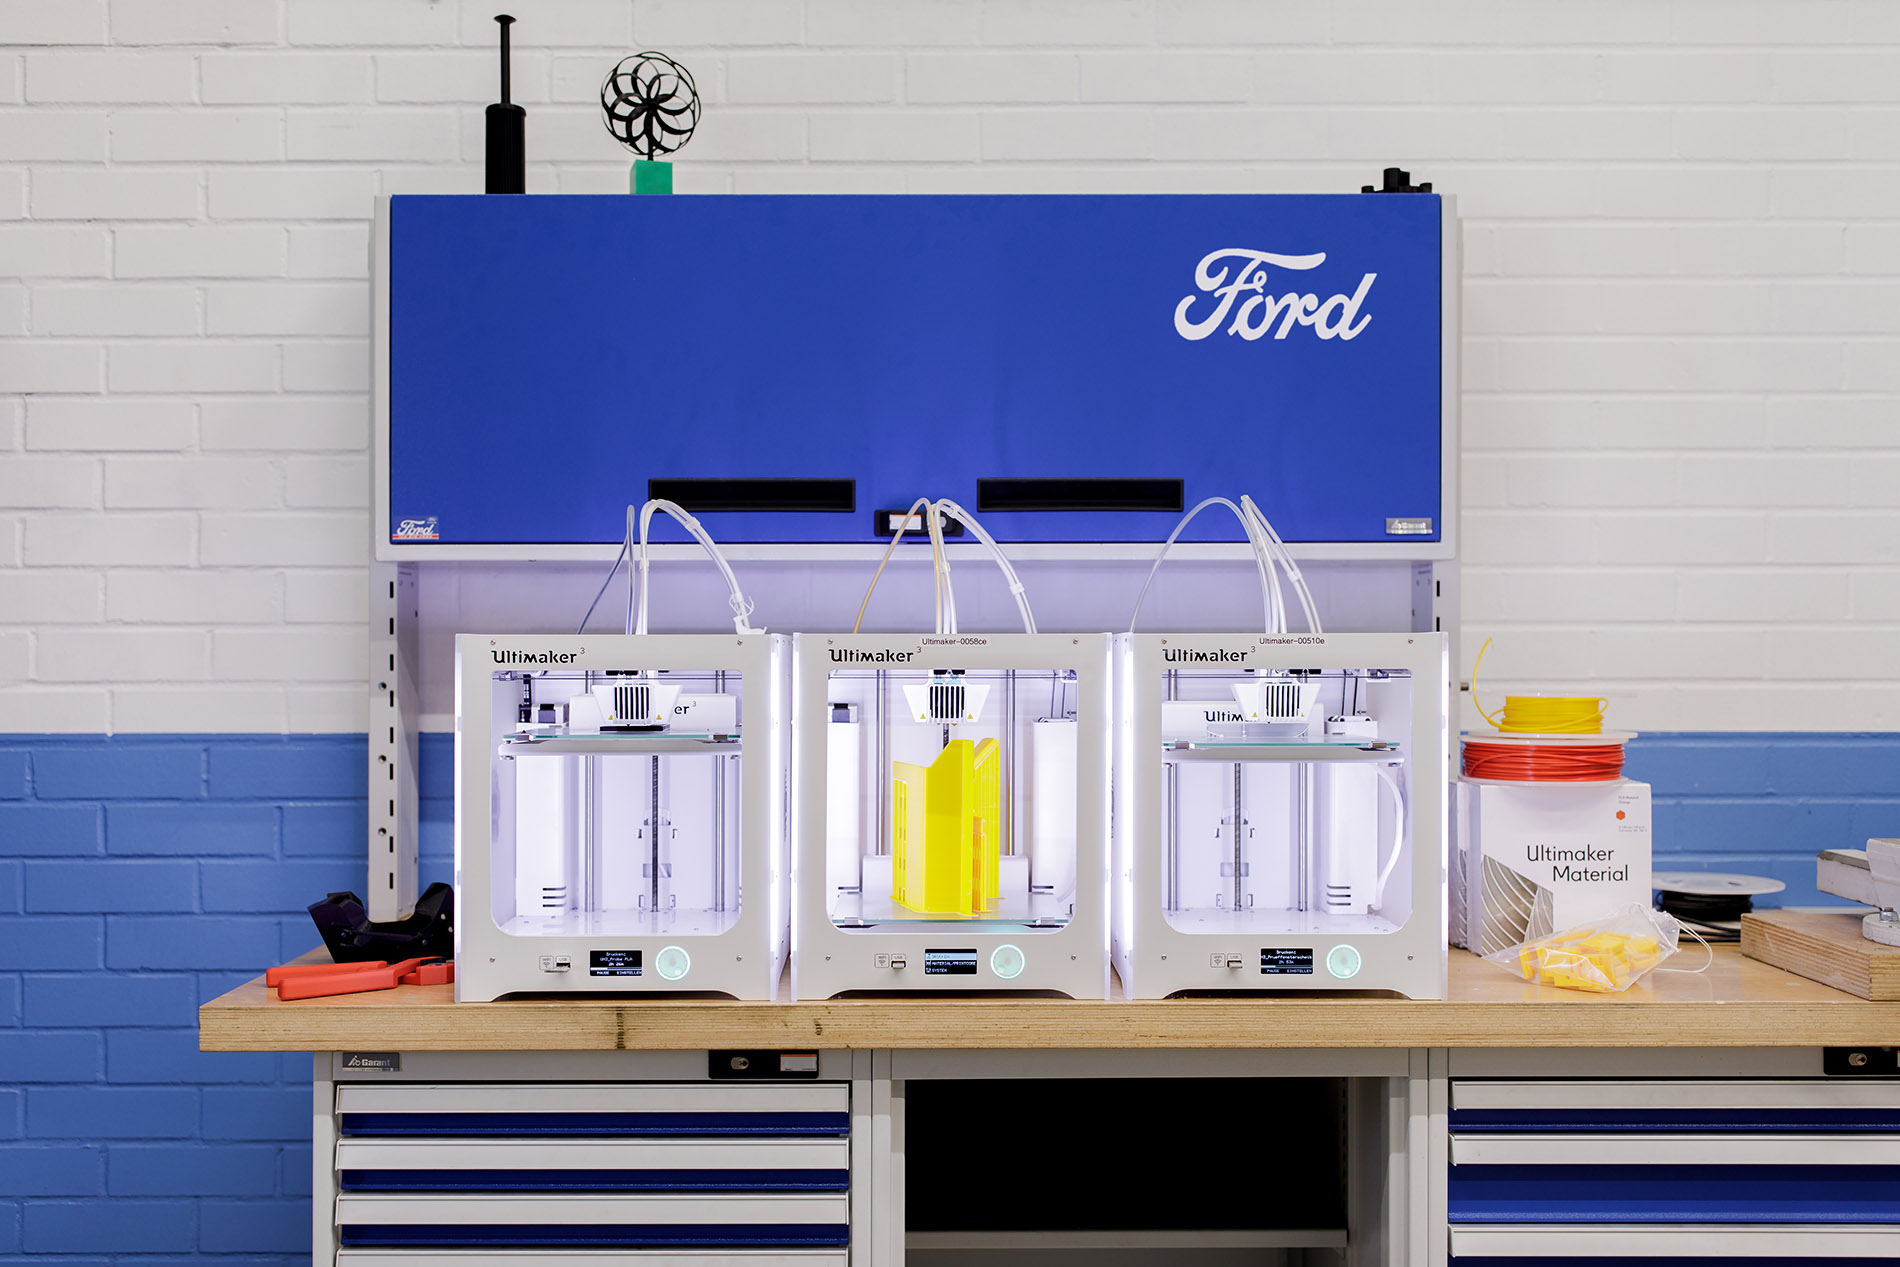 Ford started with the Ultimaker 3 before adding Ultimaker S5's